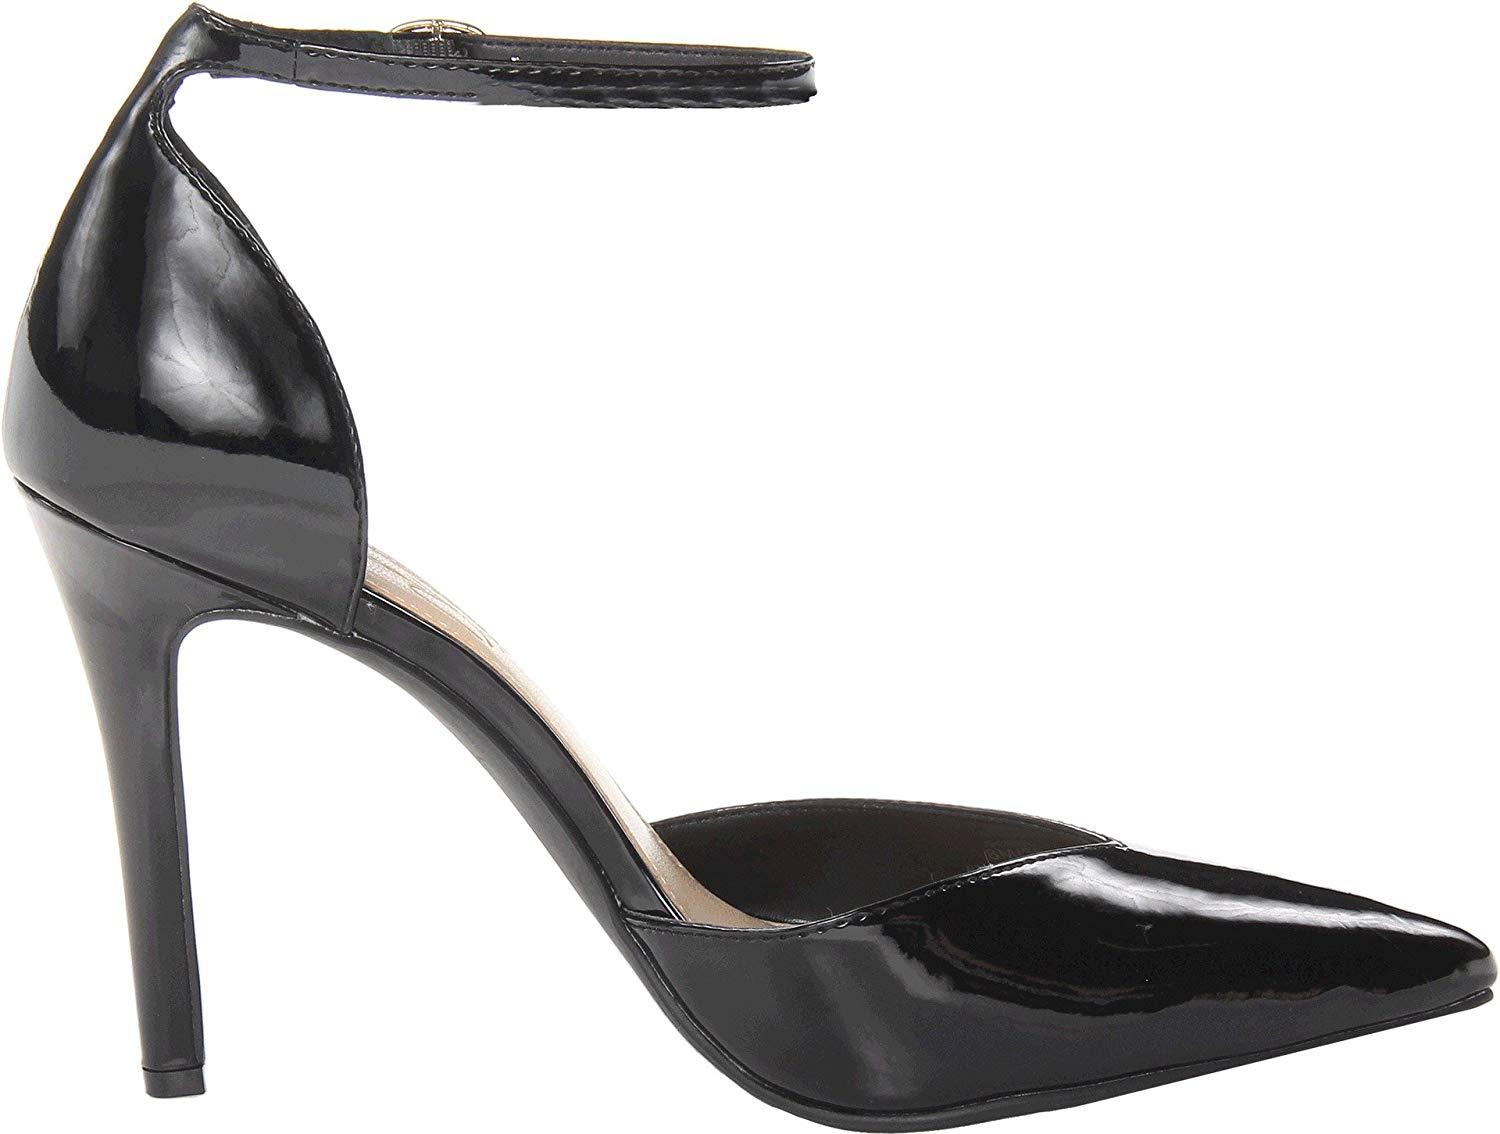 Jessica Simpson Womens Cirrus Leather Pointed Toe Ankle